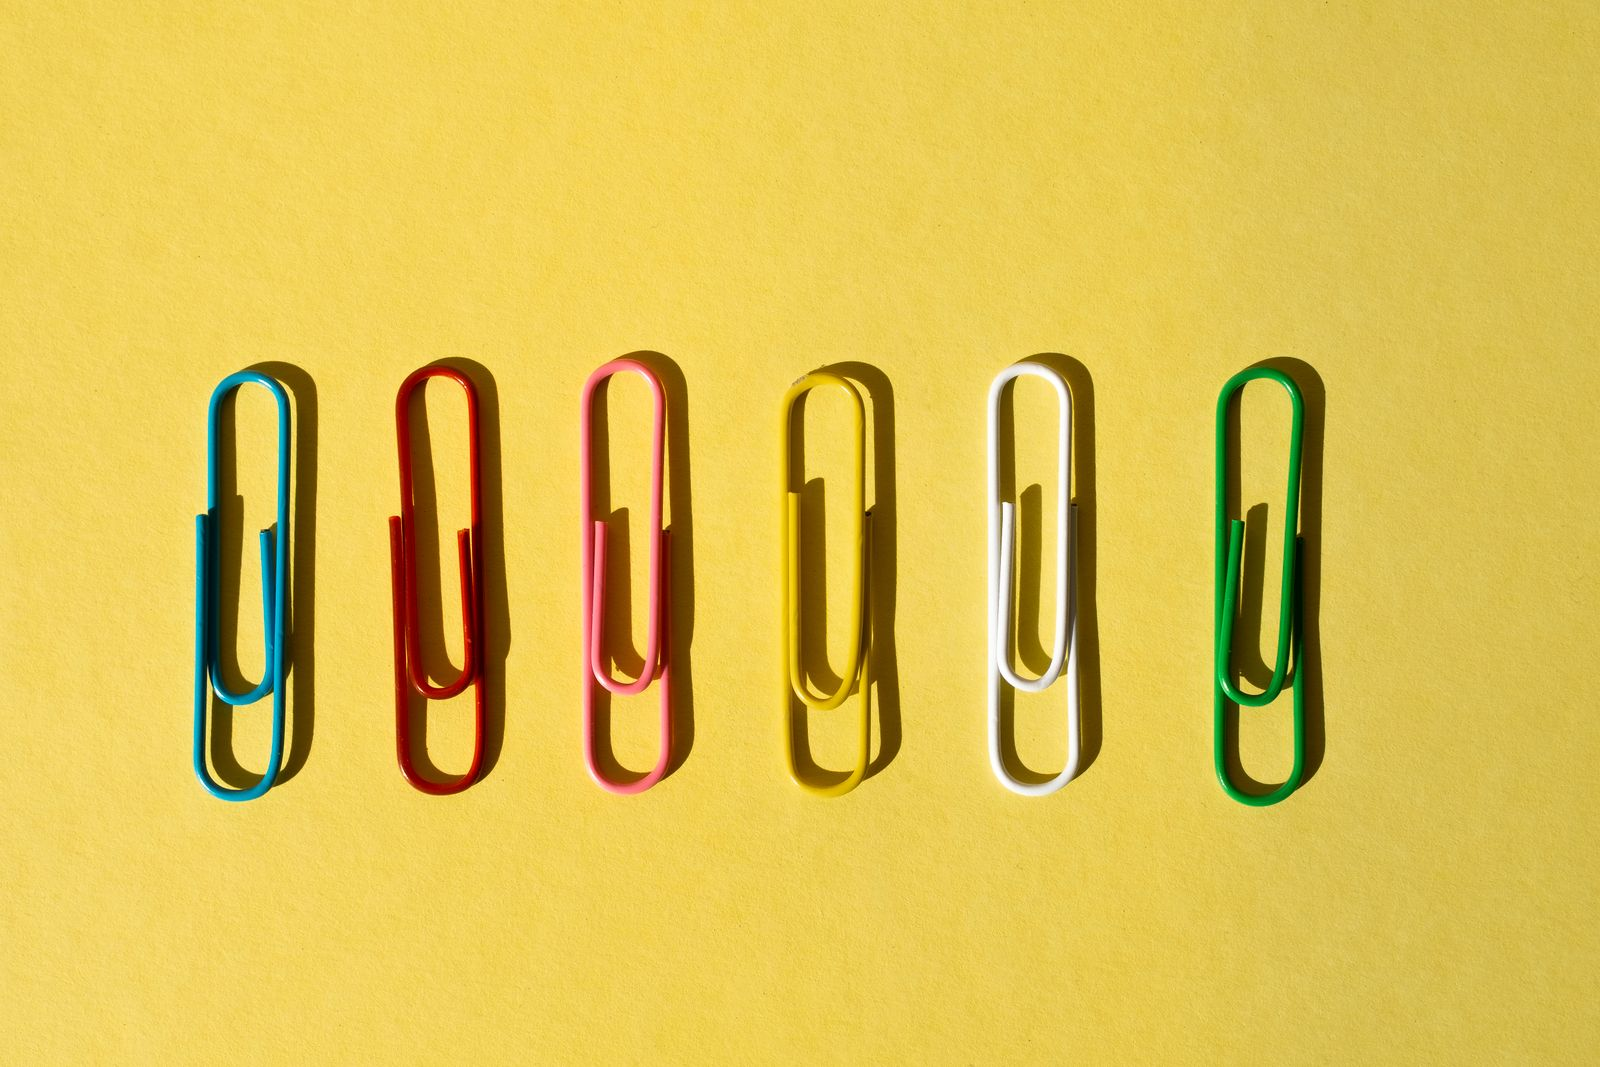 Colorful Paperclips on the yellow background